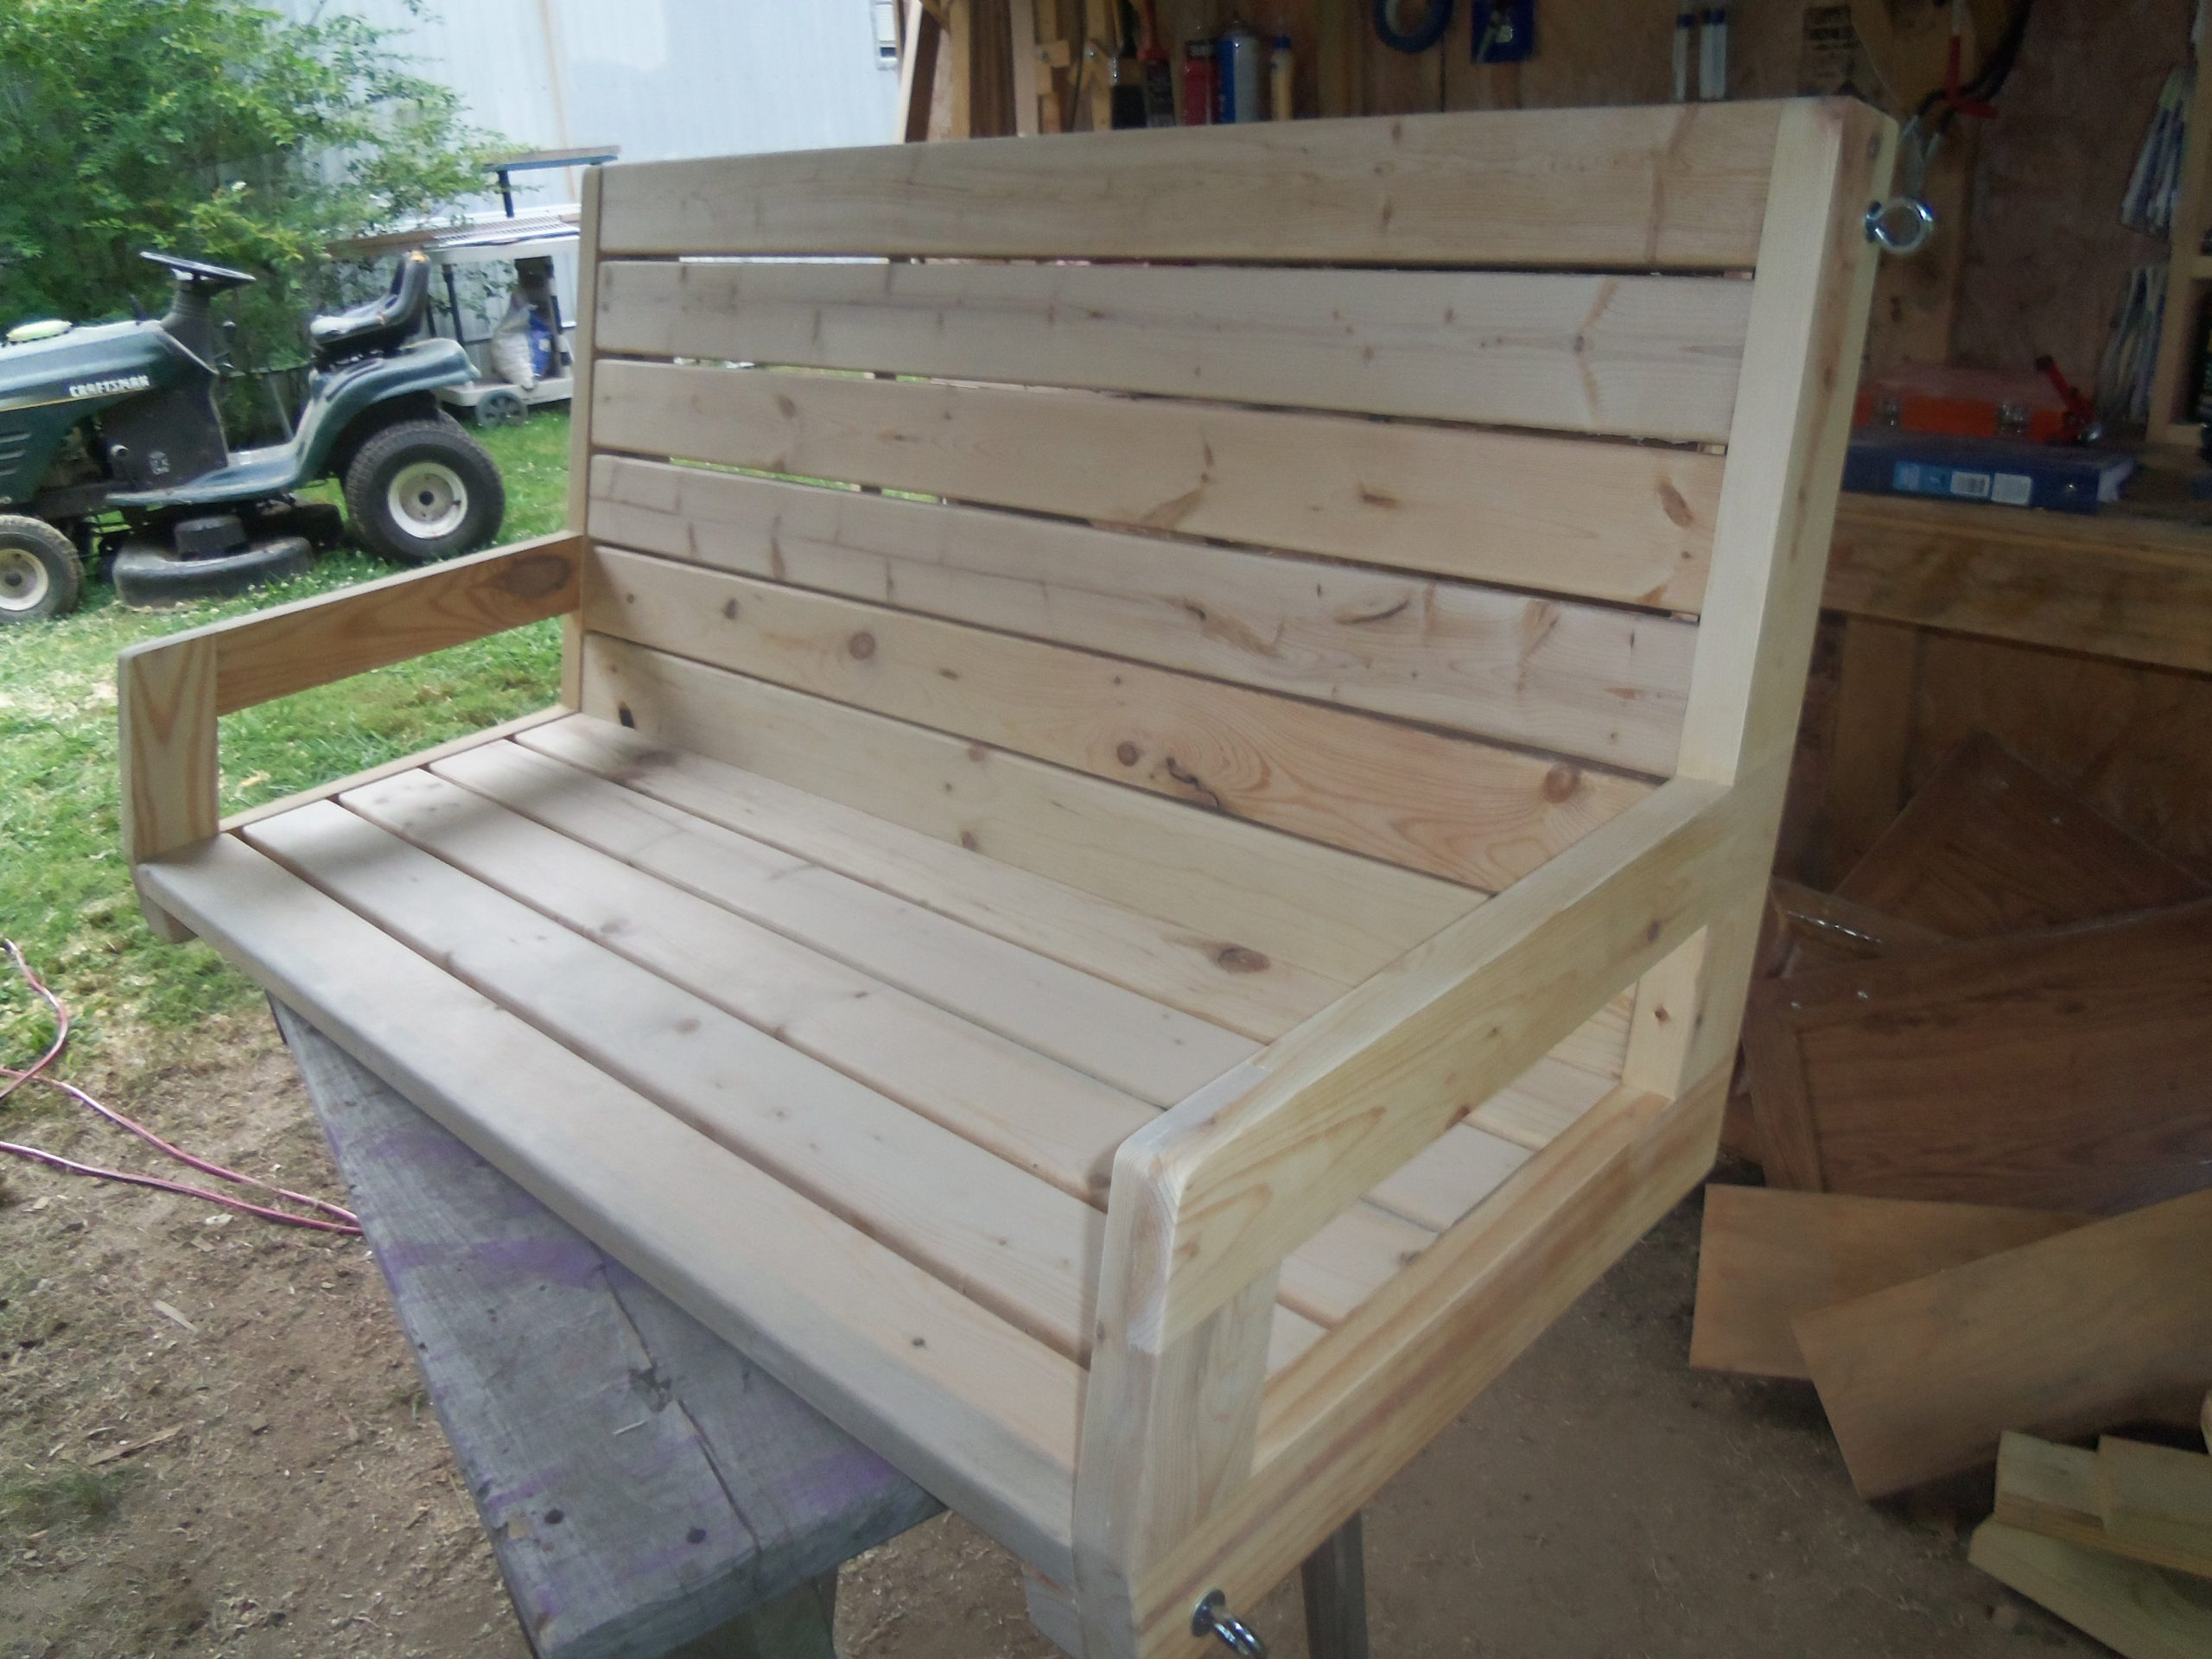 Randy Whittemire's 2x4 porch swing